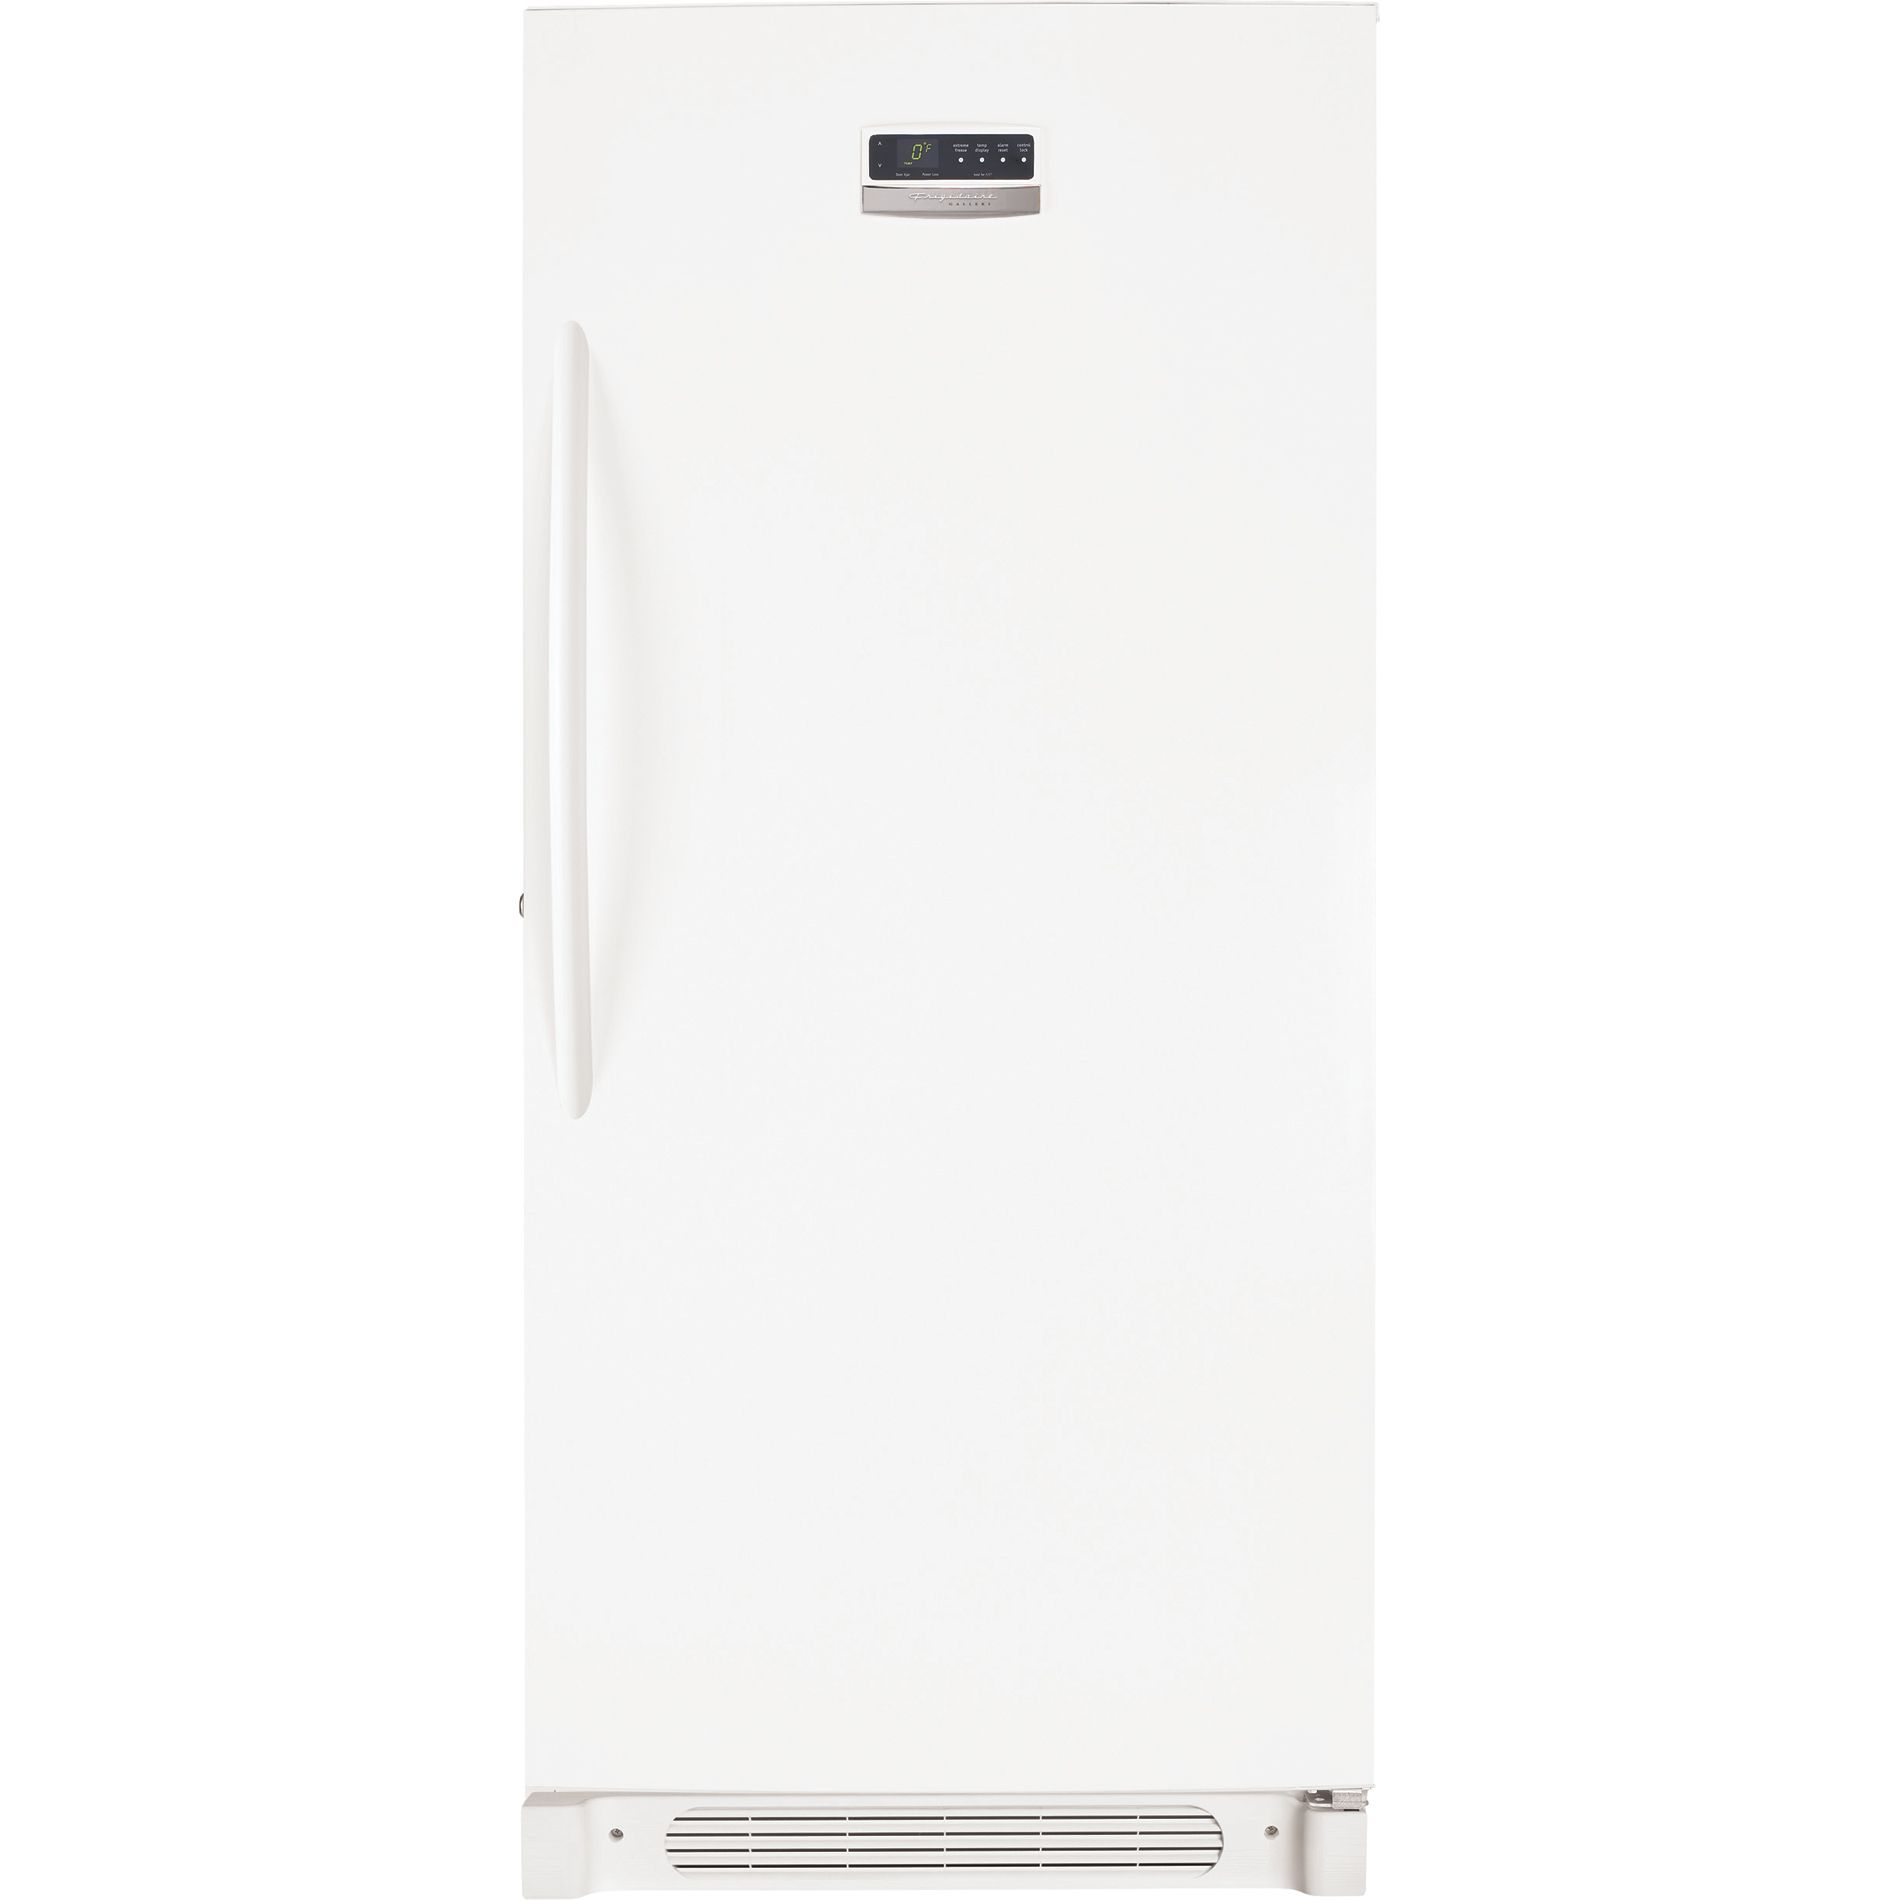 16.7 cu. ft. Upright Freezer